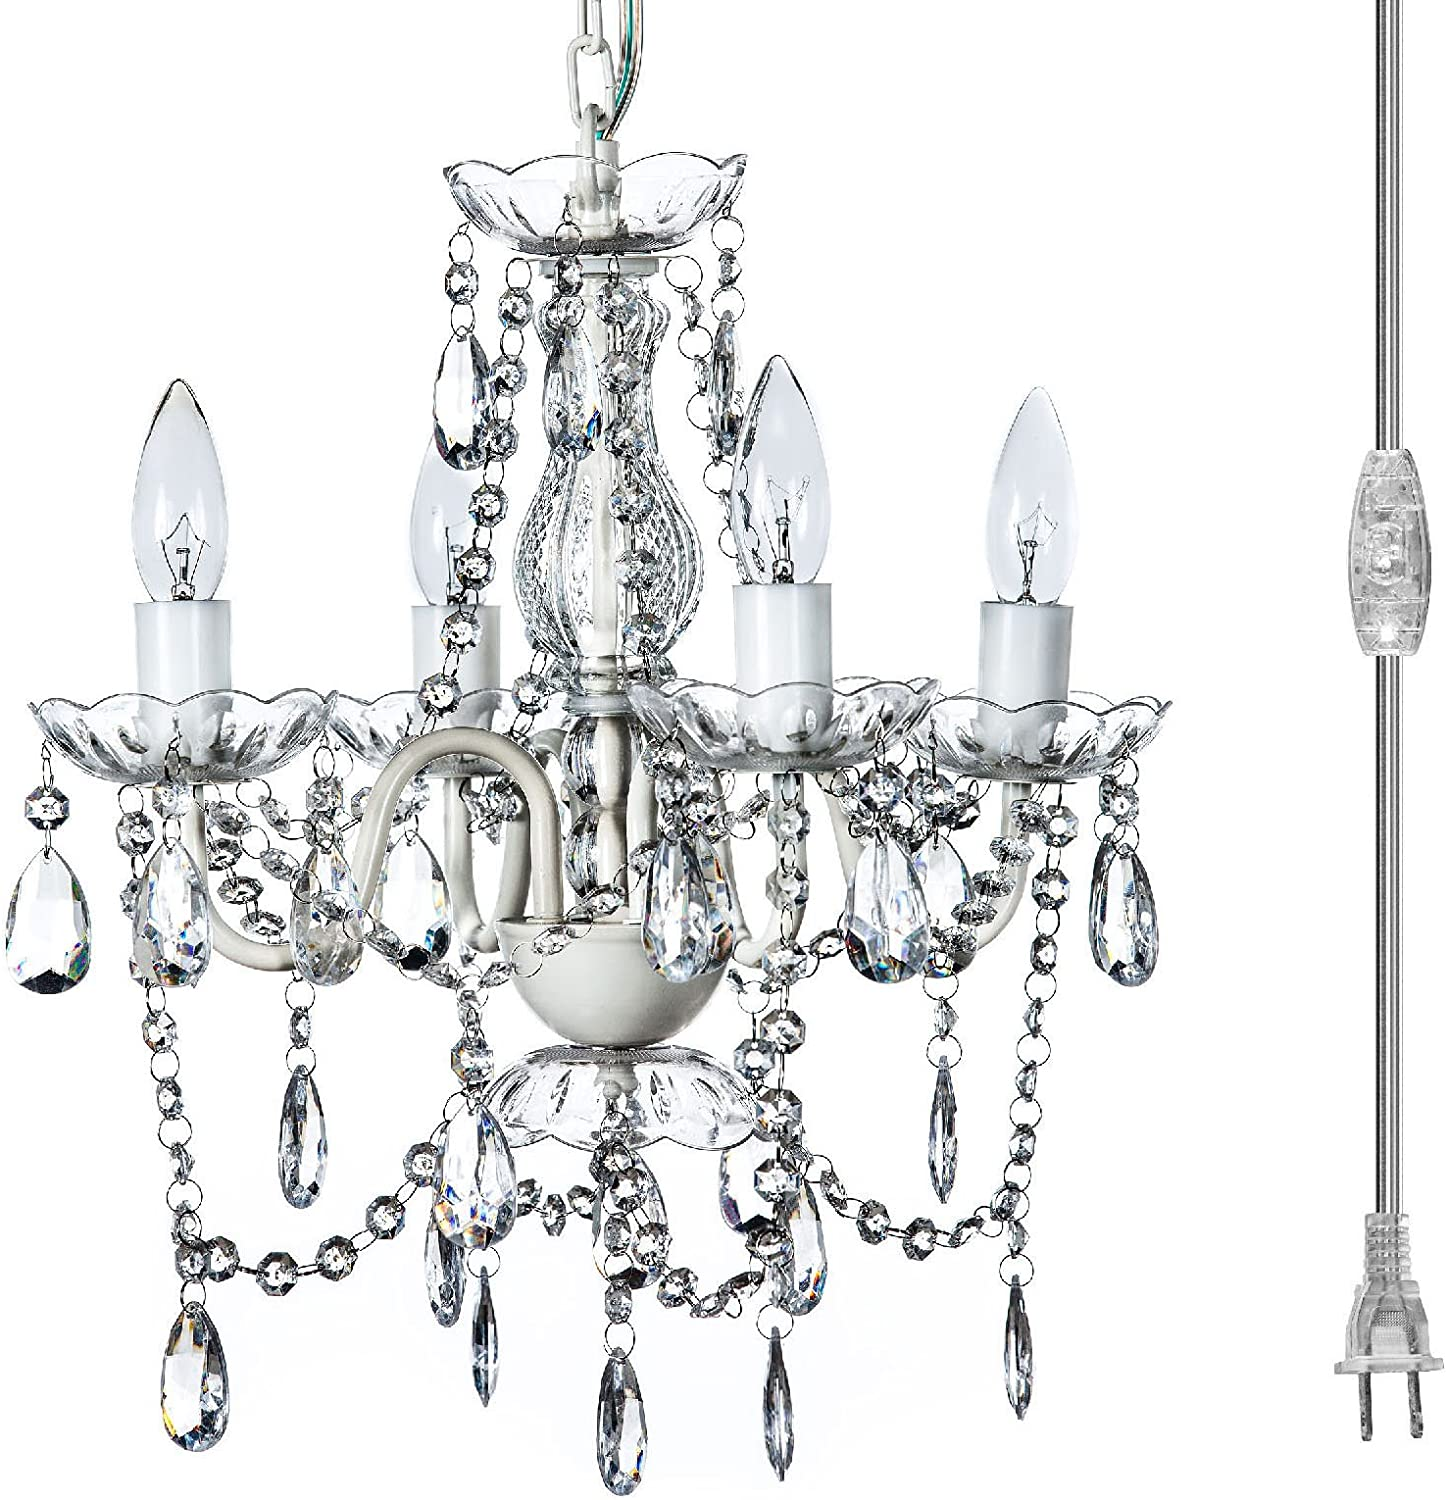 The Original Gypsy Color 4 Light Plug-in Pendant Chandelier for H17.5 x W15 , White Metal Frame with Clear Acrylic Crystals Better Than Glass